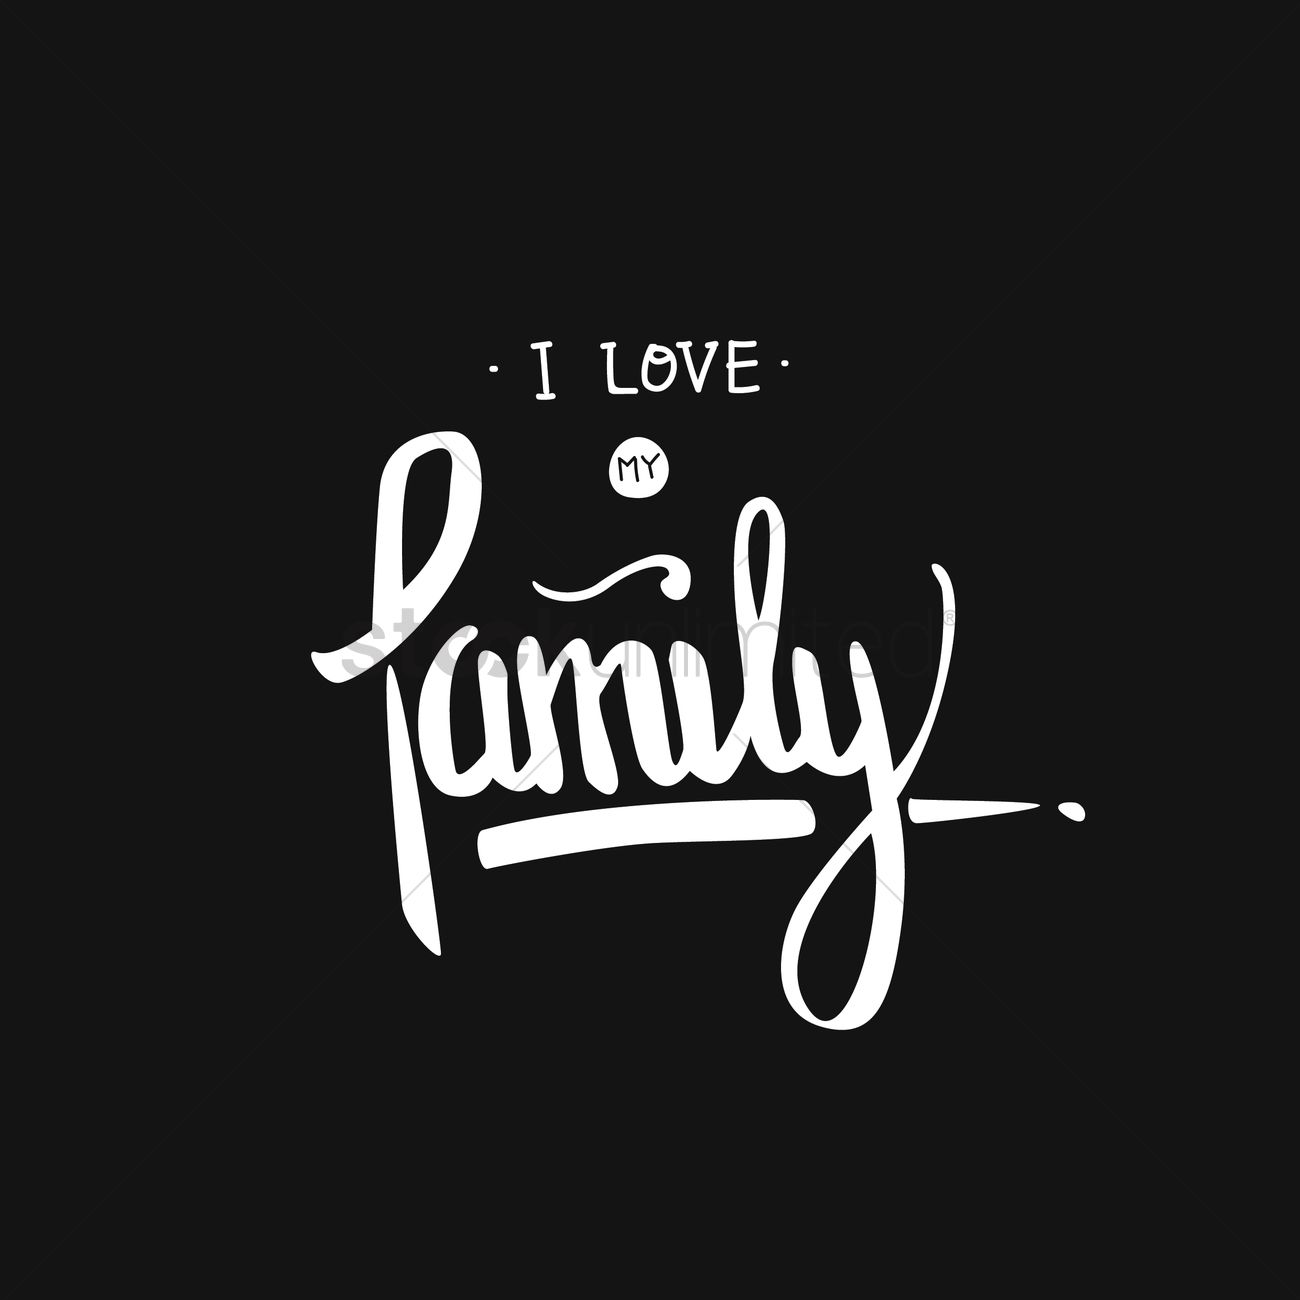 I Love My Family Card Vector Image 1707982 Stockunlimited